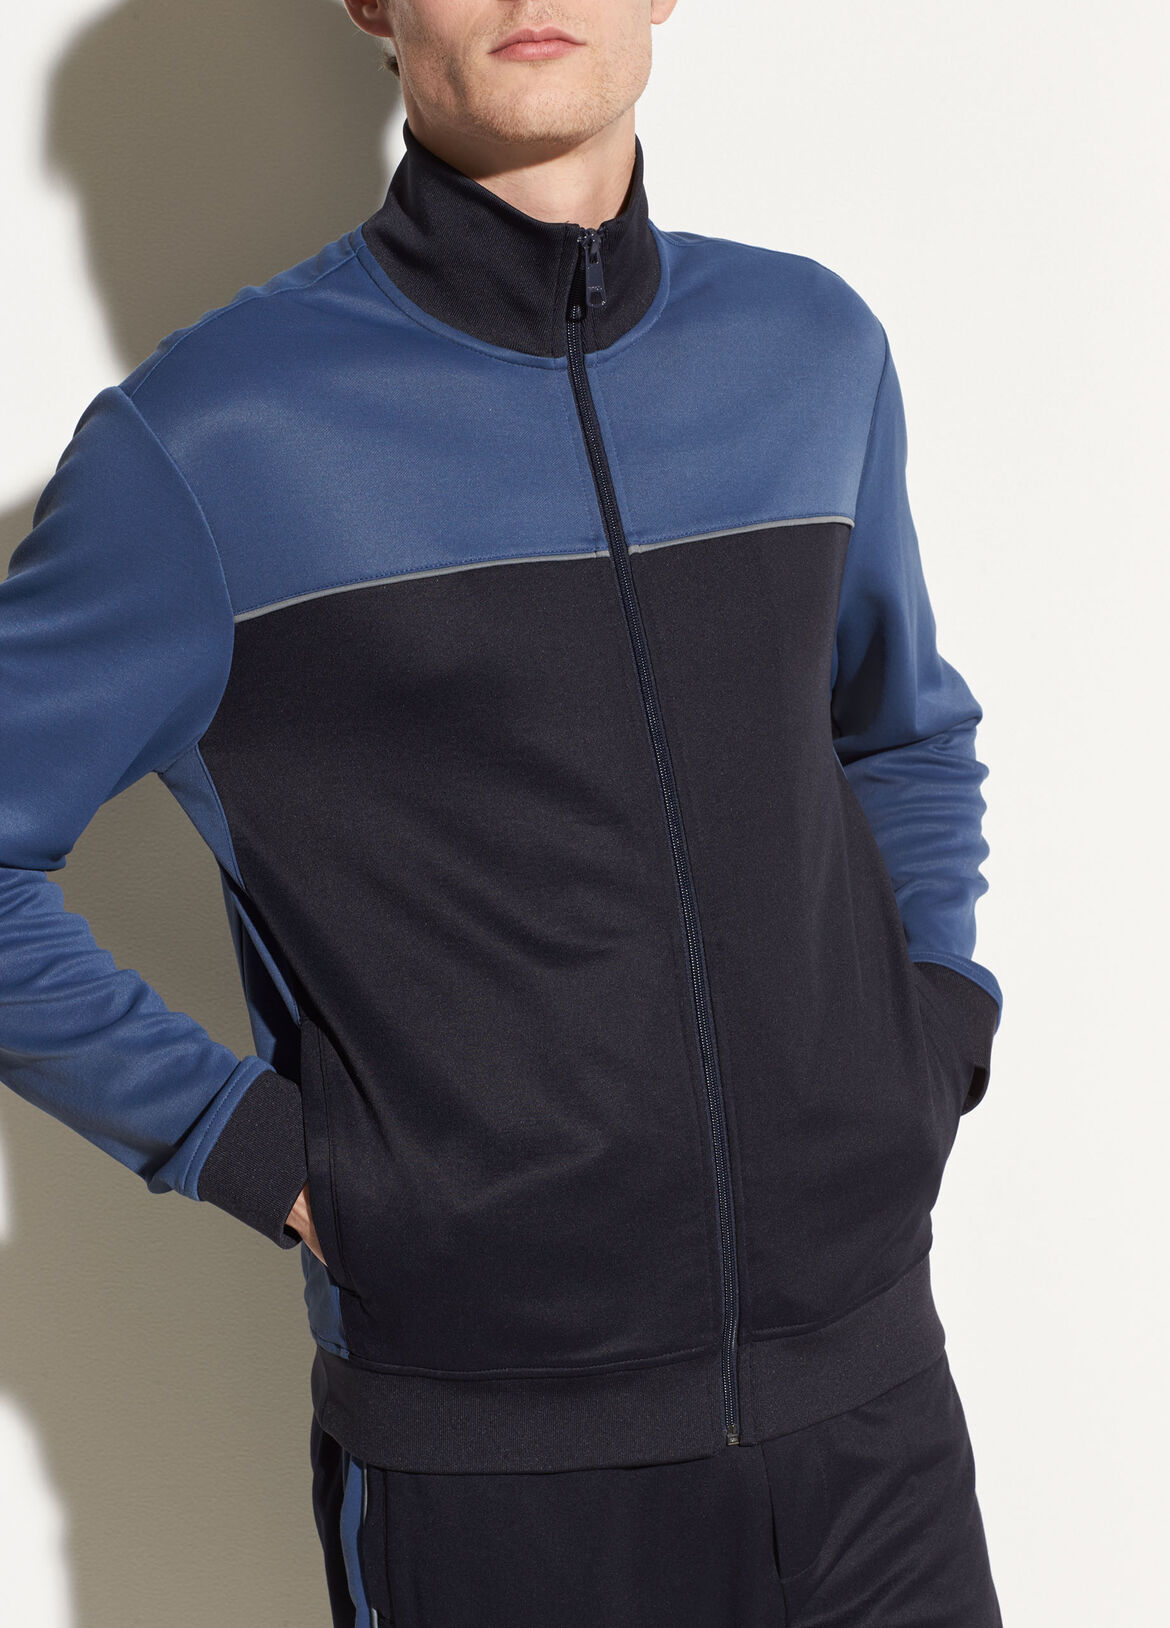 3aa4829cc6a59 Men's Jackets and Outerwear | Vince